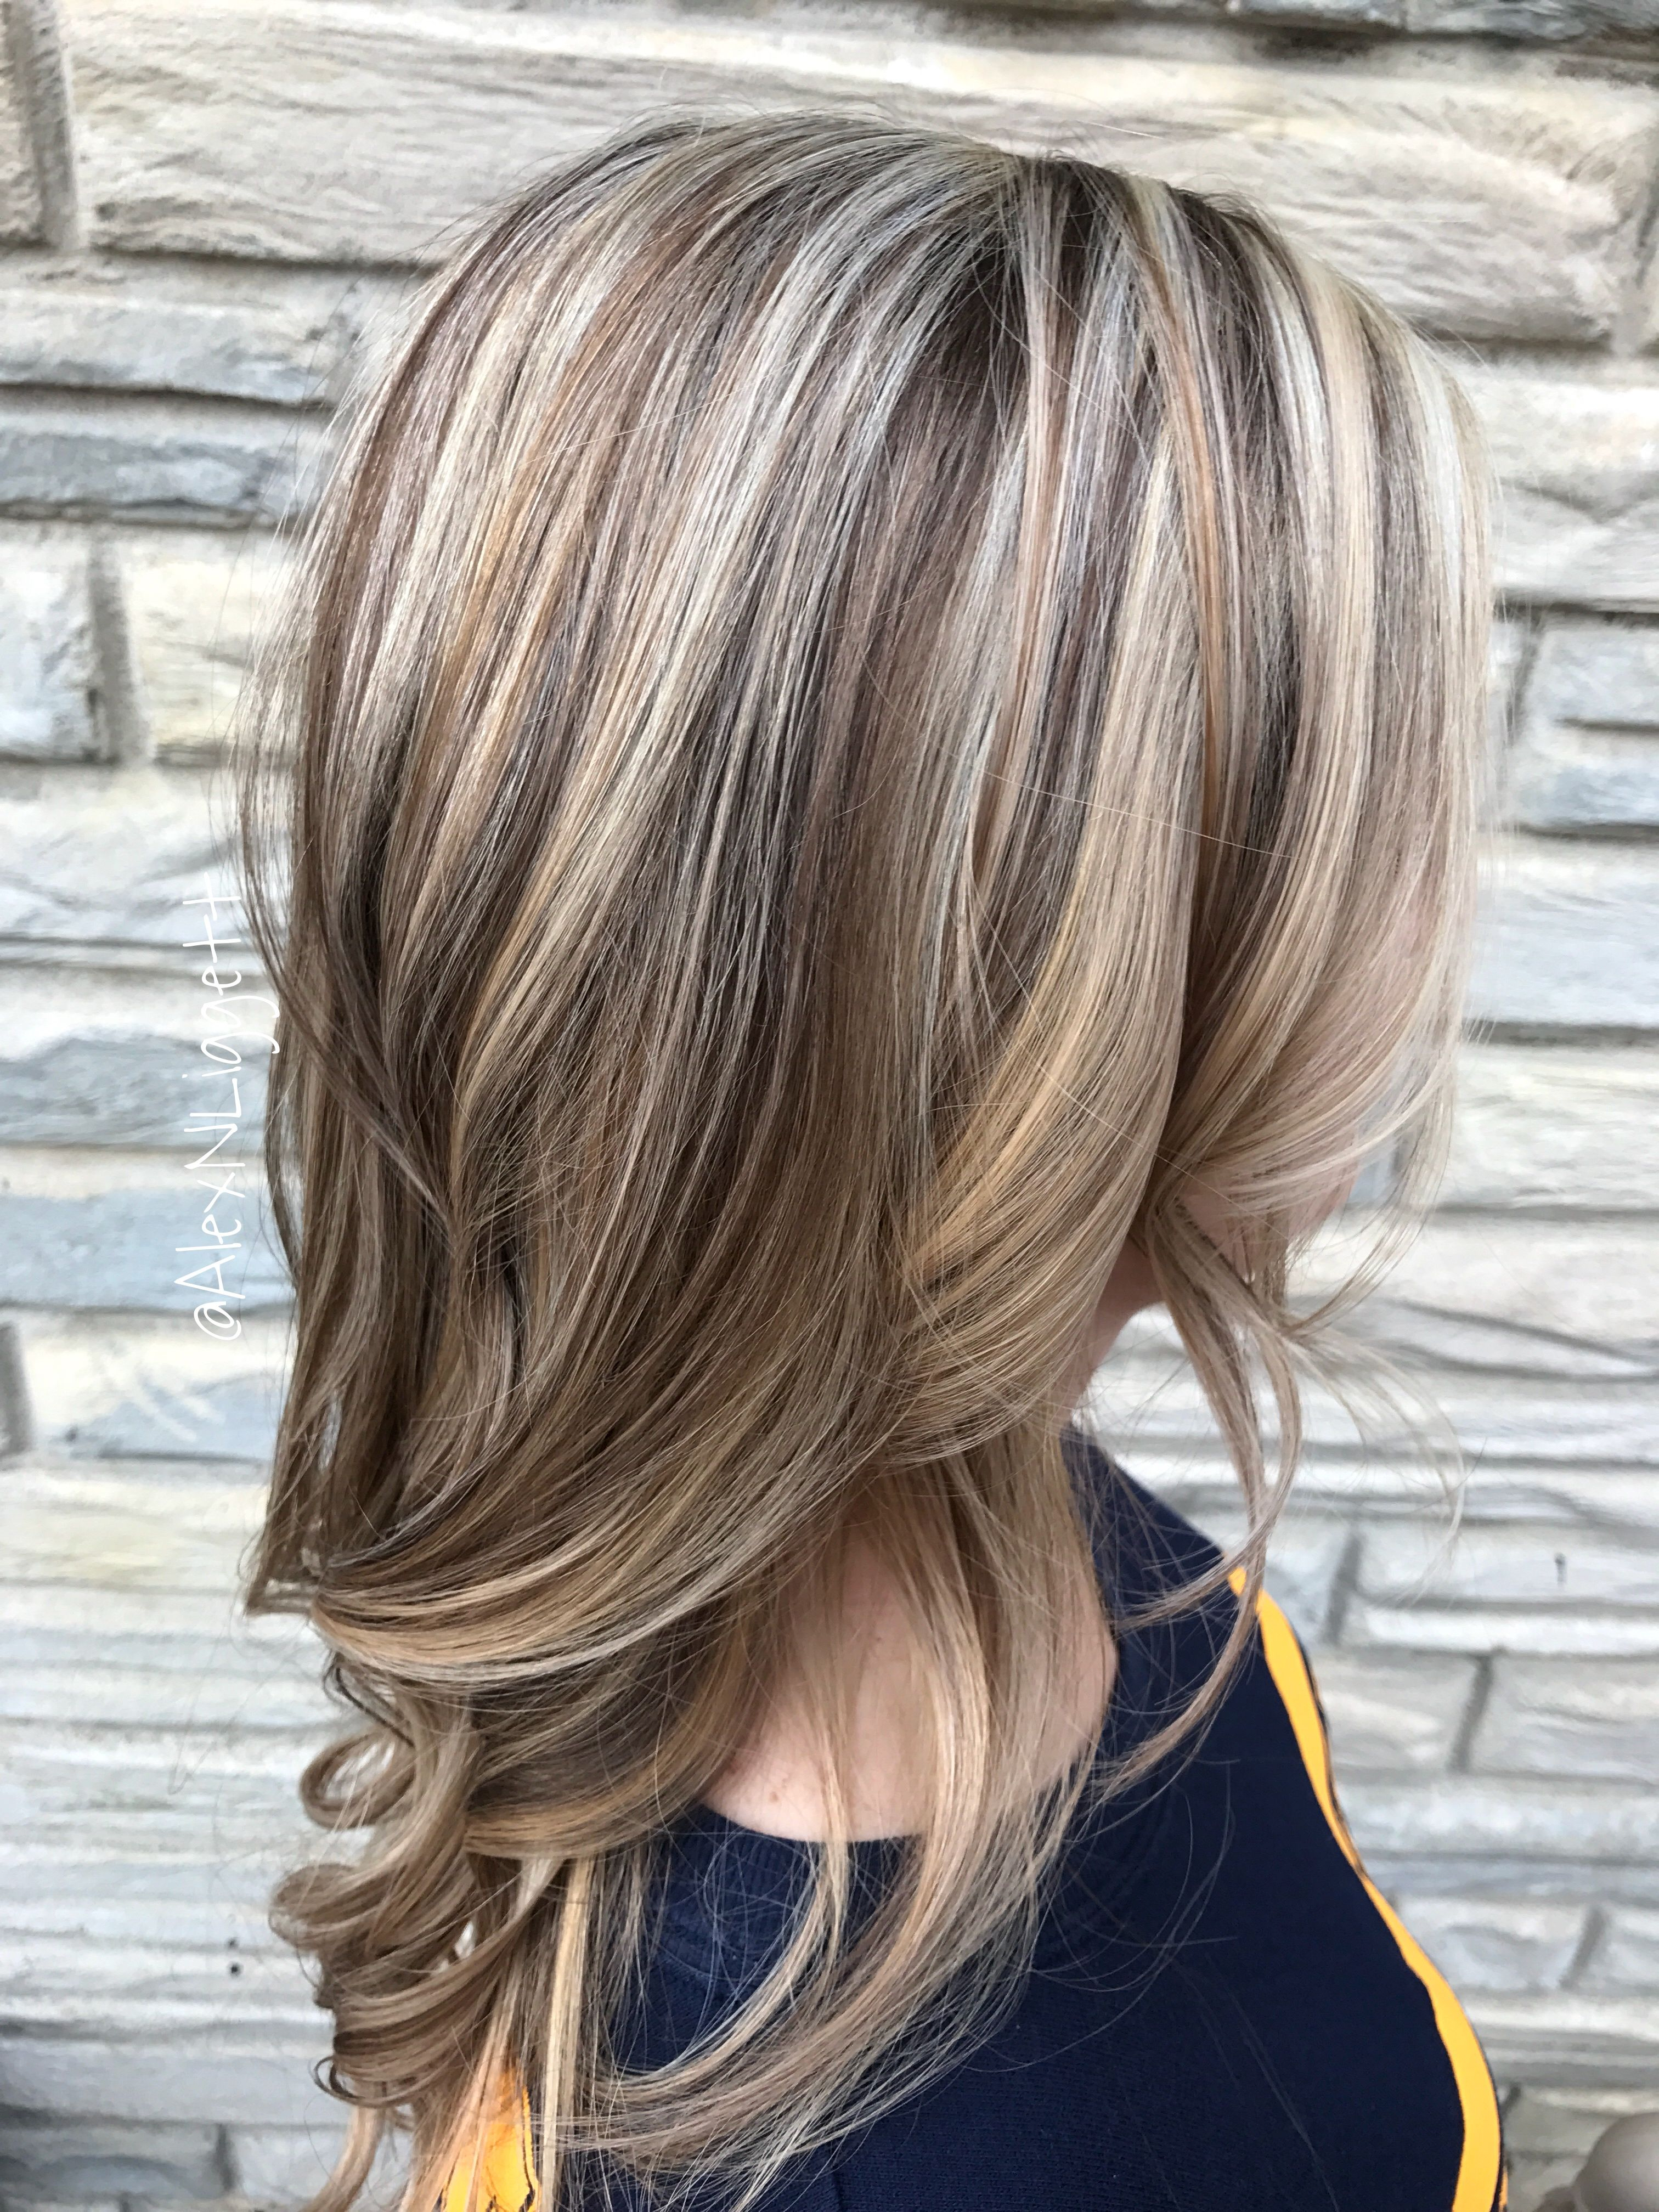 Highlights Blond Blonde Highlights And Light Brown Lowlights Http Noahxnw